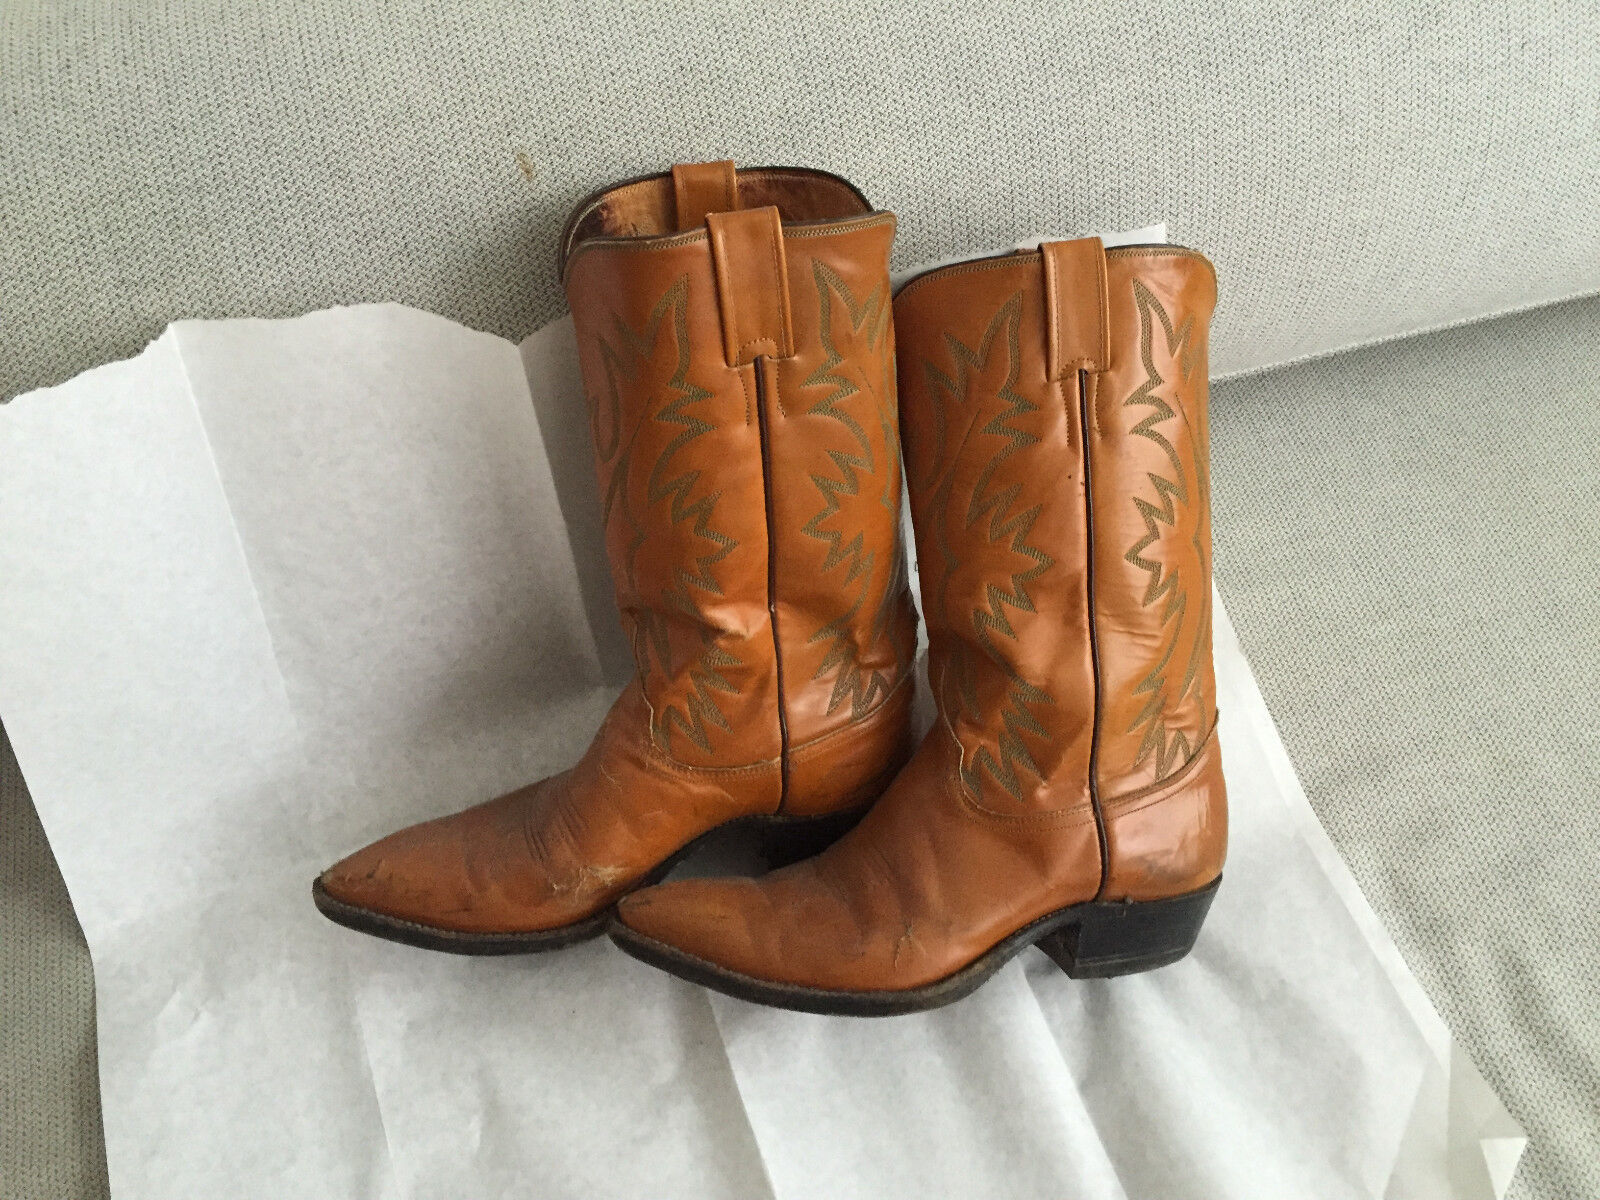 MEN'S JUSTIN gold LEATHER WESTERN COWBOY BOOTS SHOES 8 1 2 E STYLE 2912 SEXY